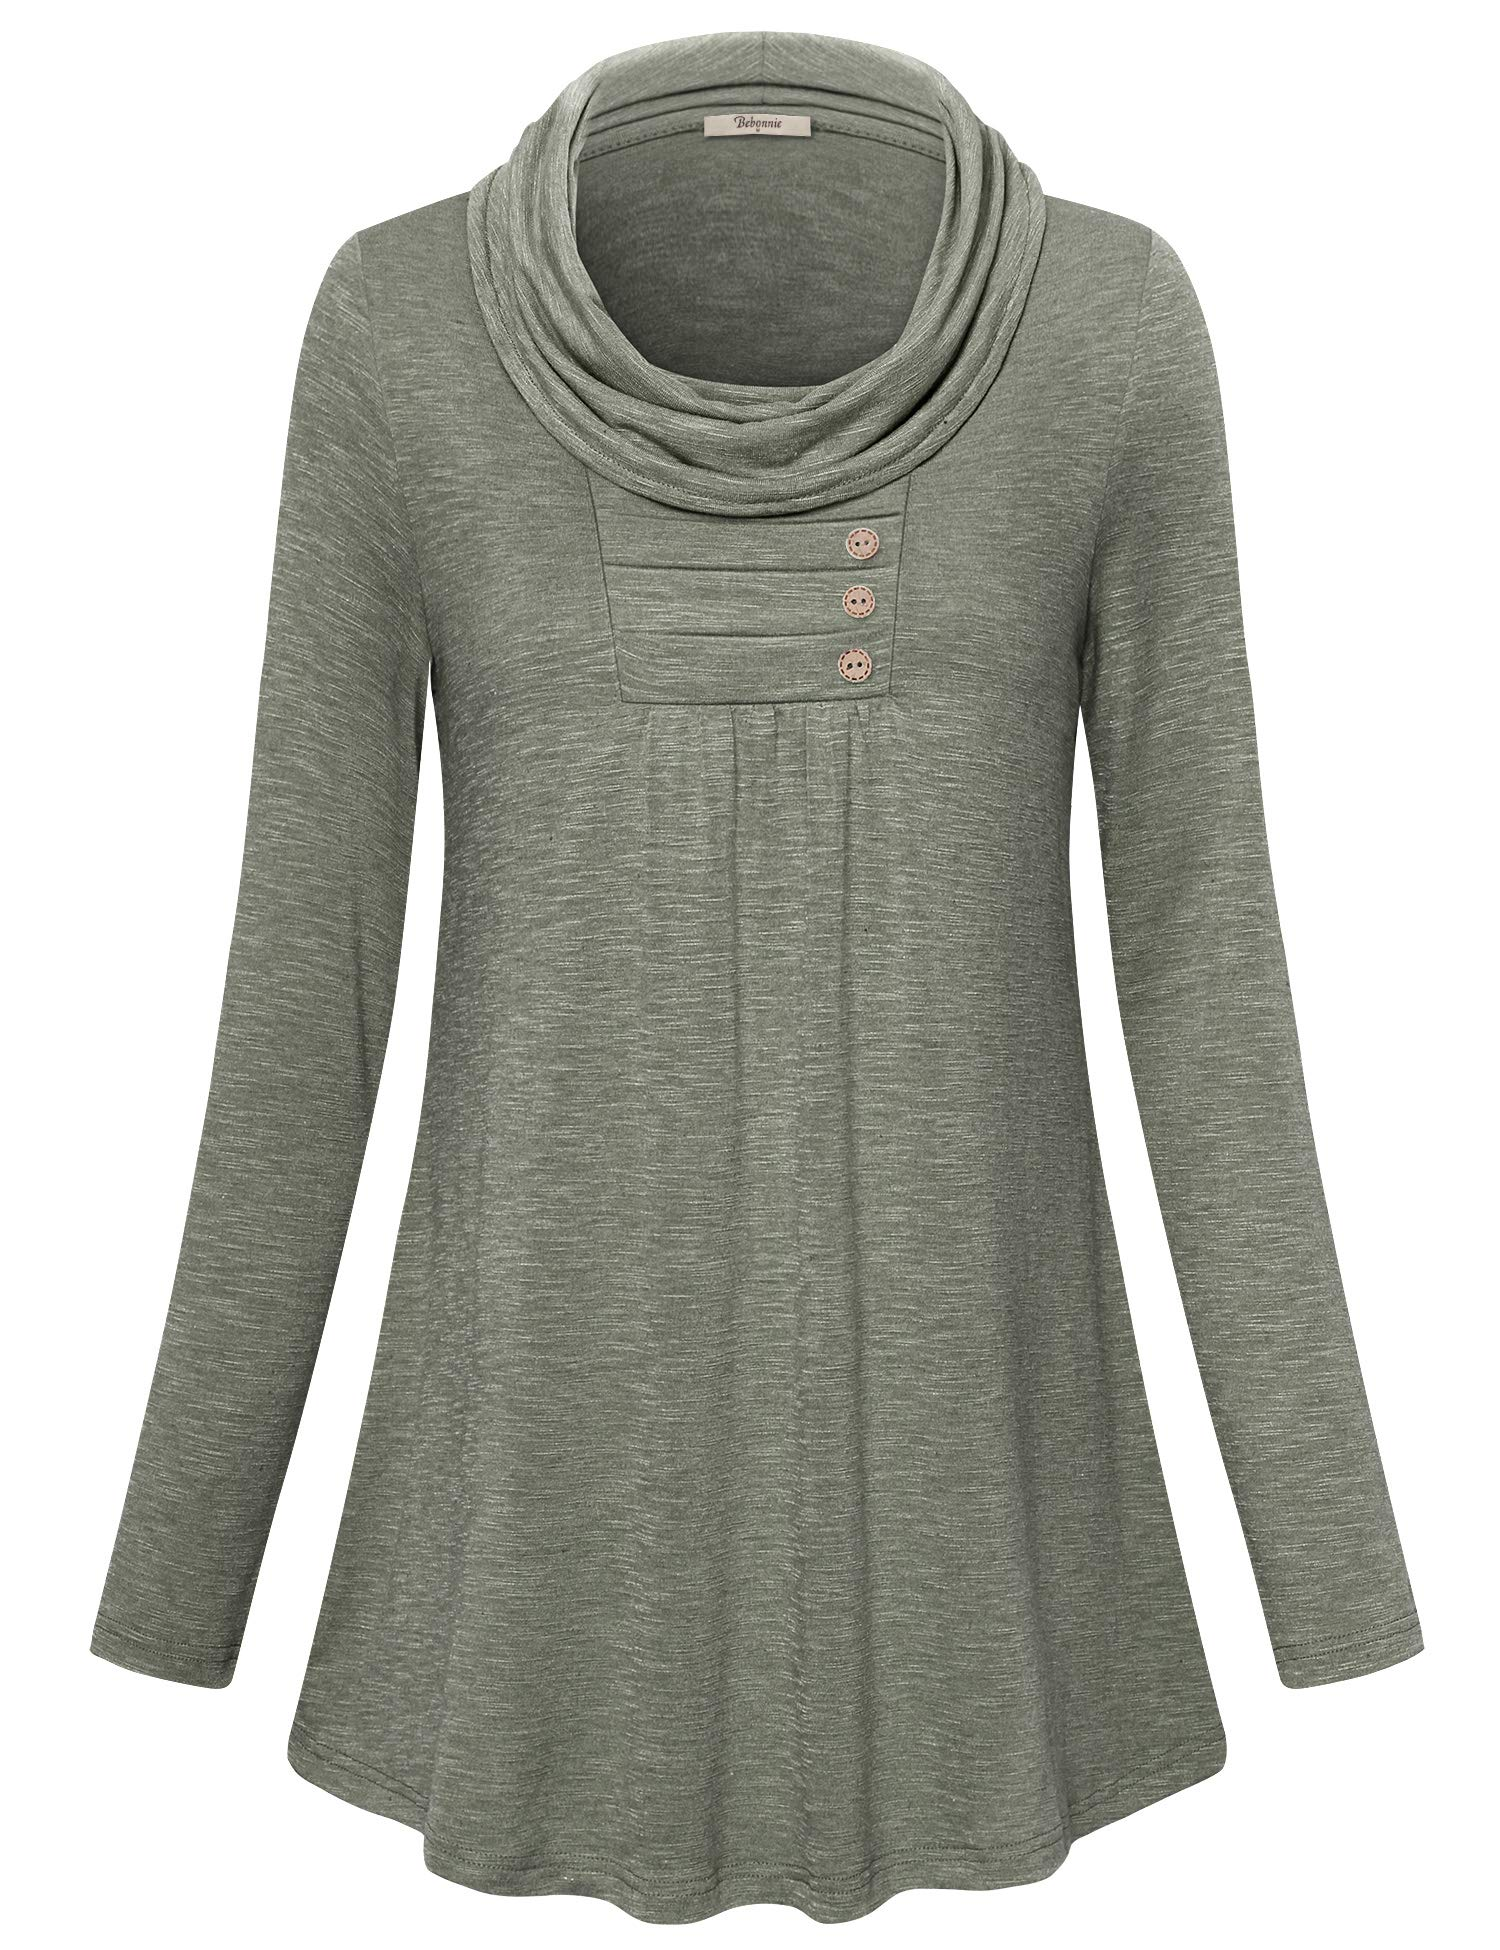 Bebonnie Tunic Tops for Leggings for Women,Knit Tops Stand Collar Stylish Modest Button Down Decor Slim Fit Flattering Flowy Shirt Army Green XX-Large